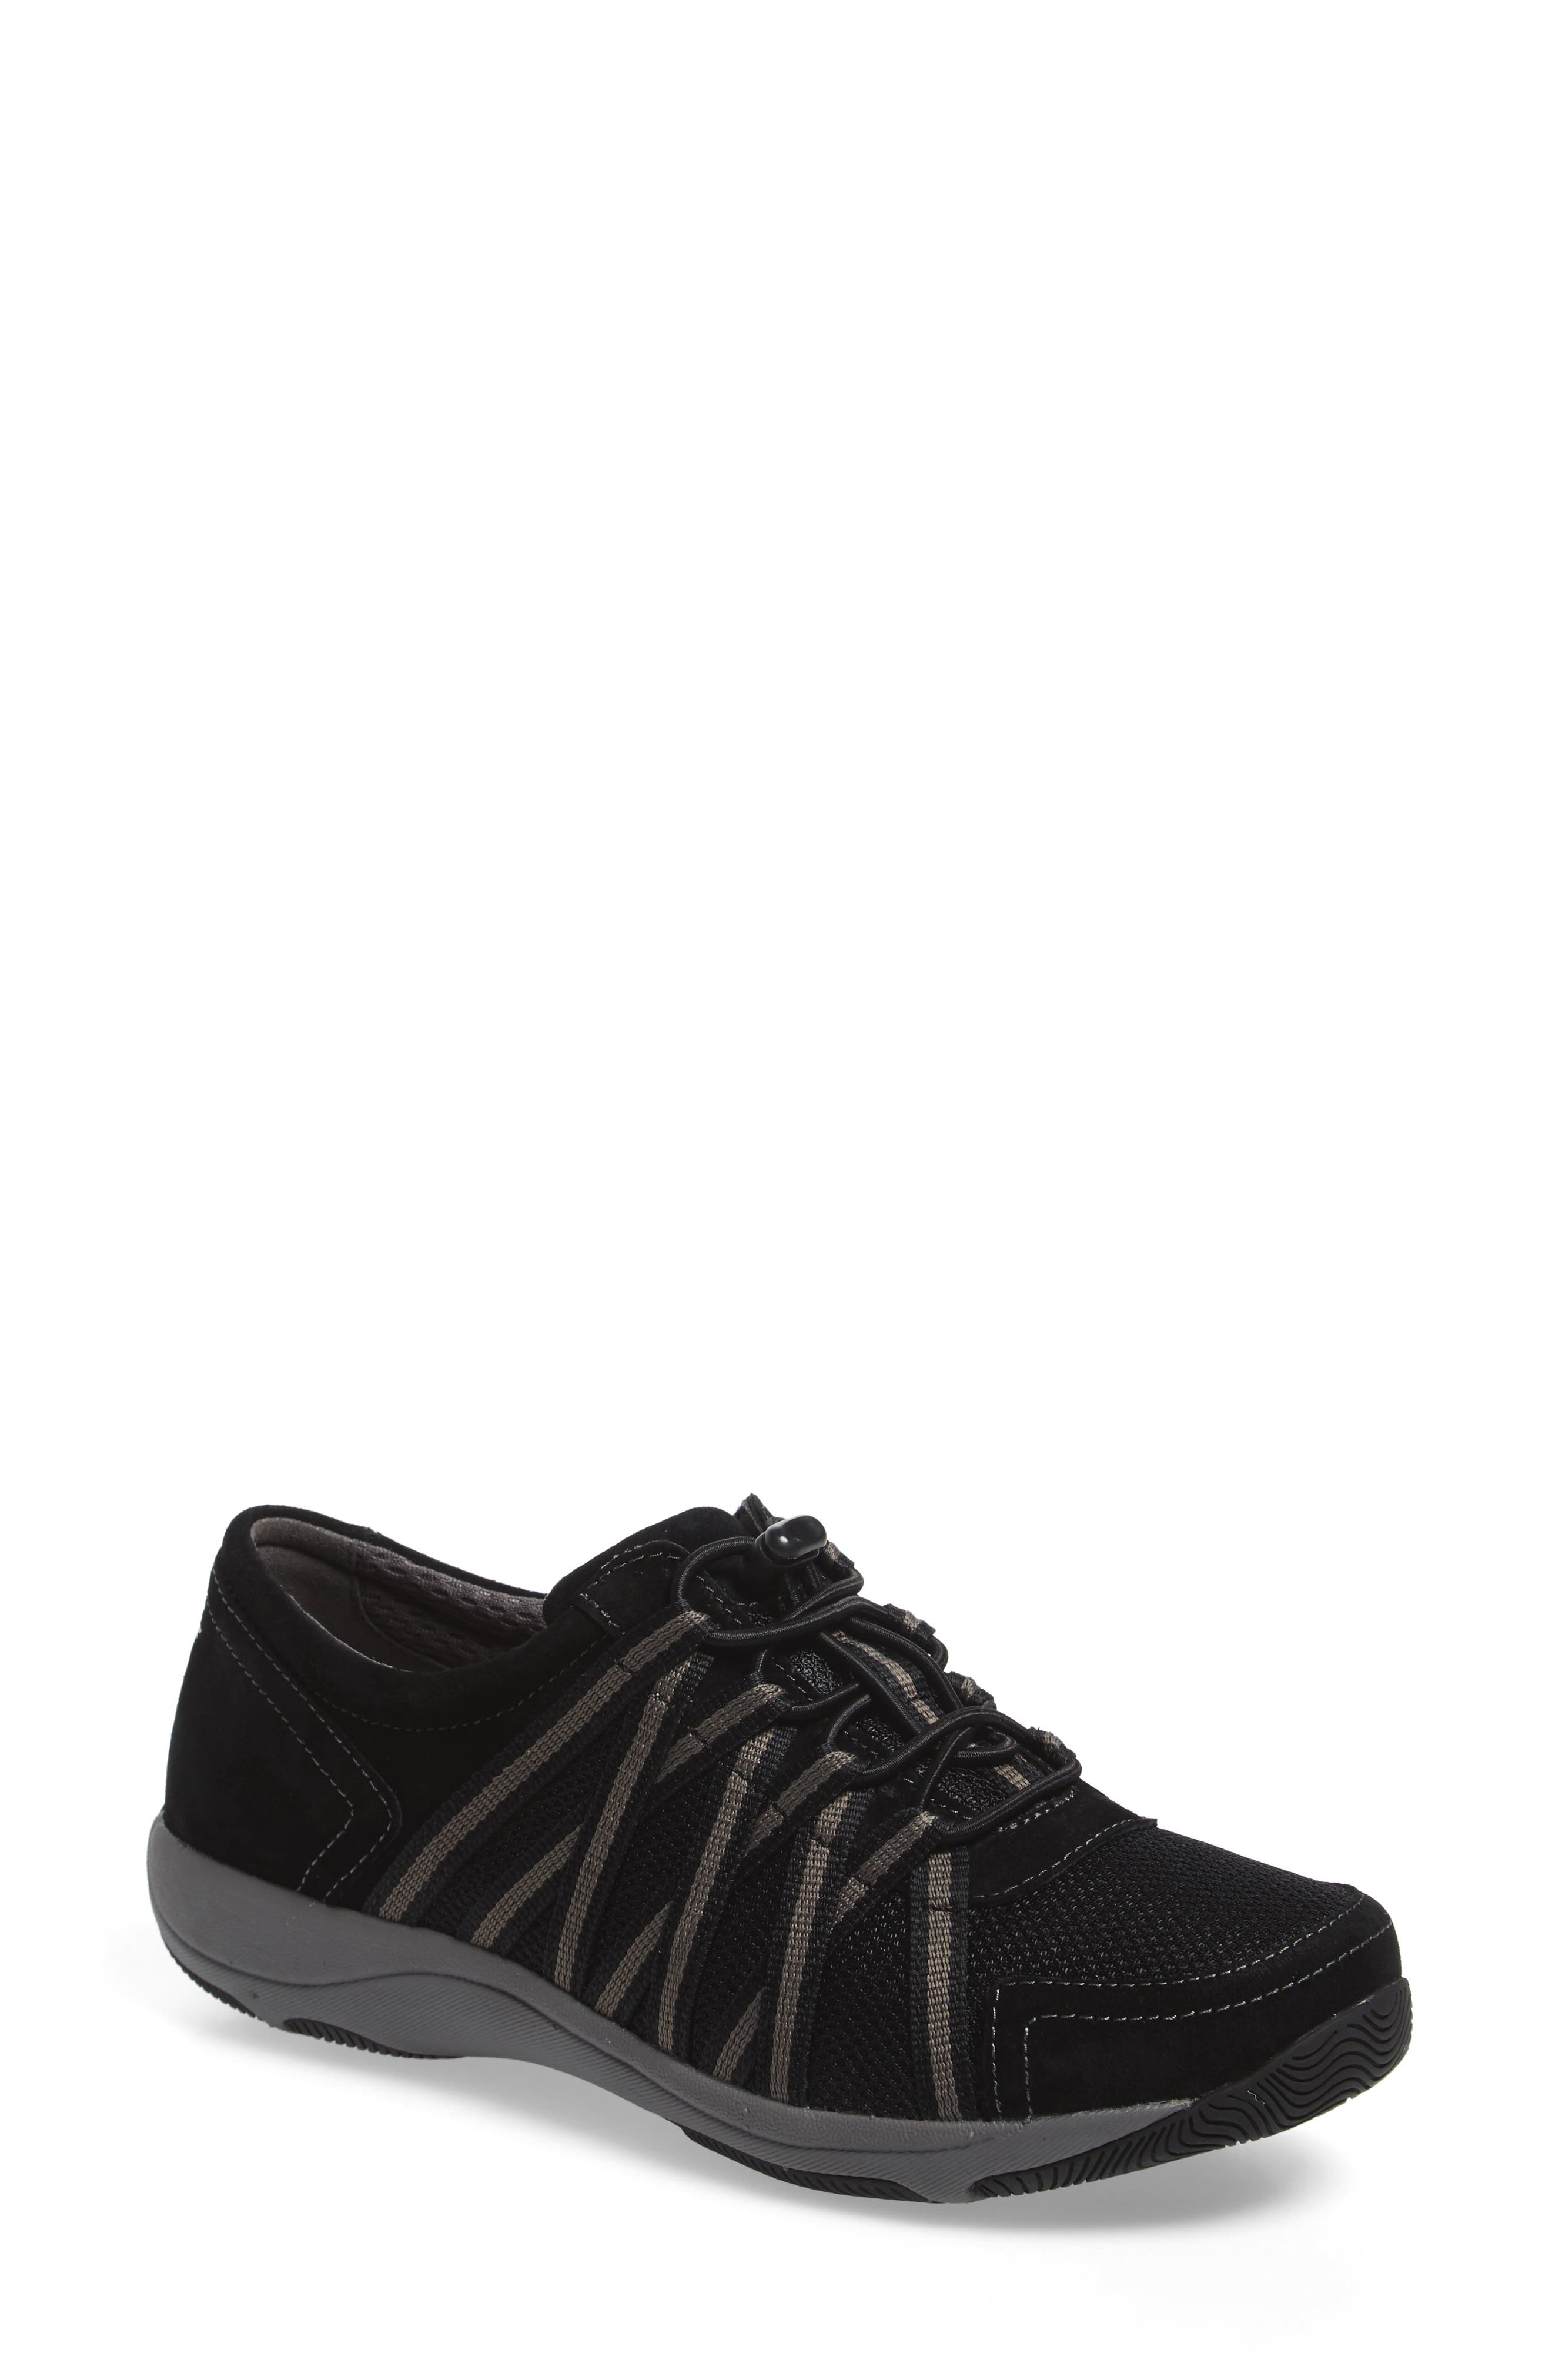 Halifax Collection Honor Sneaker,                             Main thumbnail 1, color,